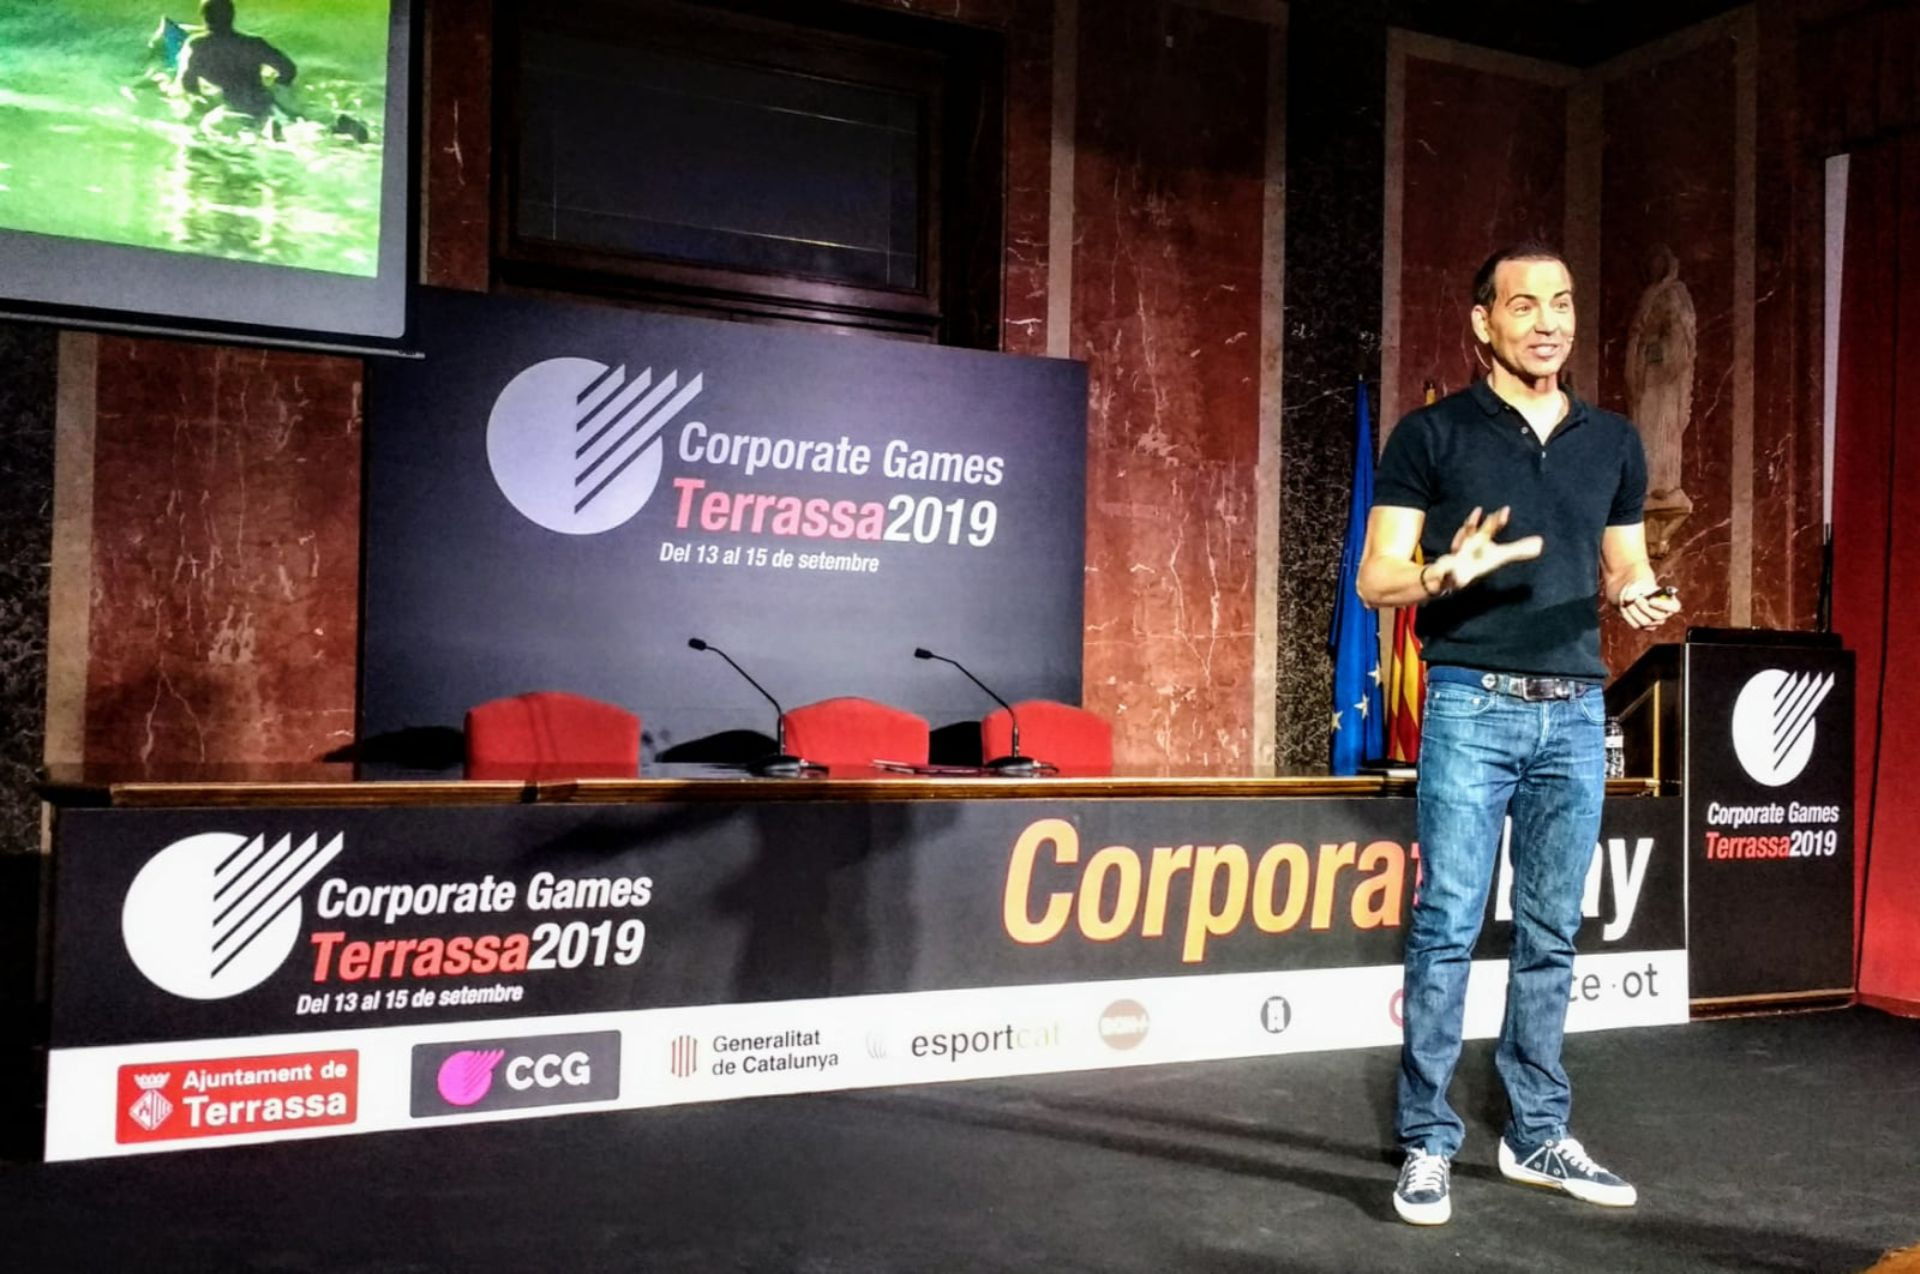 CORPORATE GAMES TERRASSA 2019-DAY2